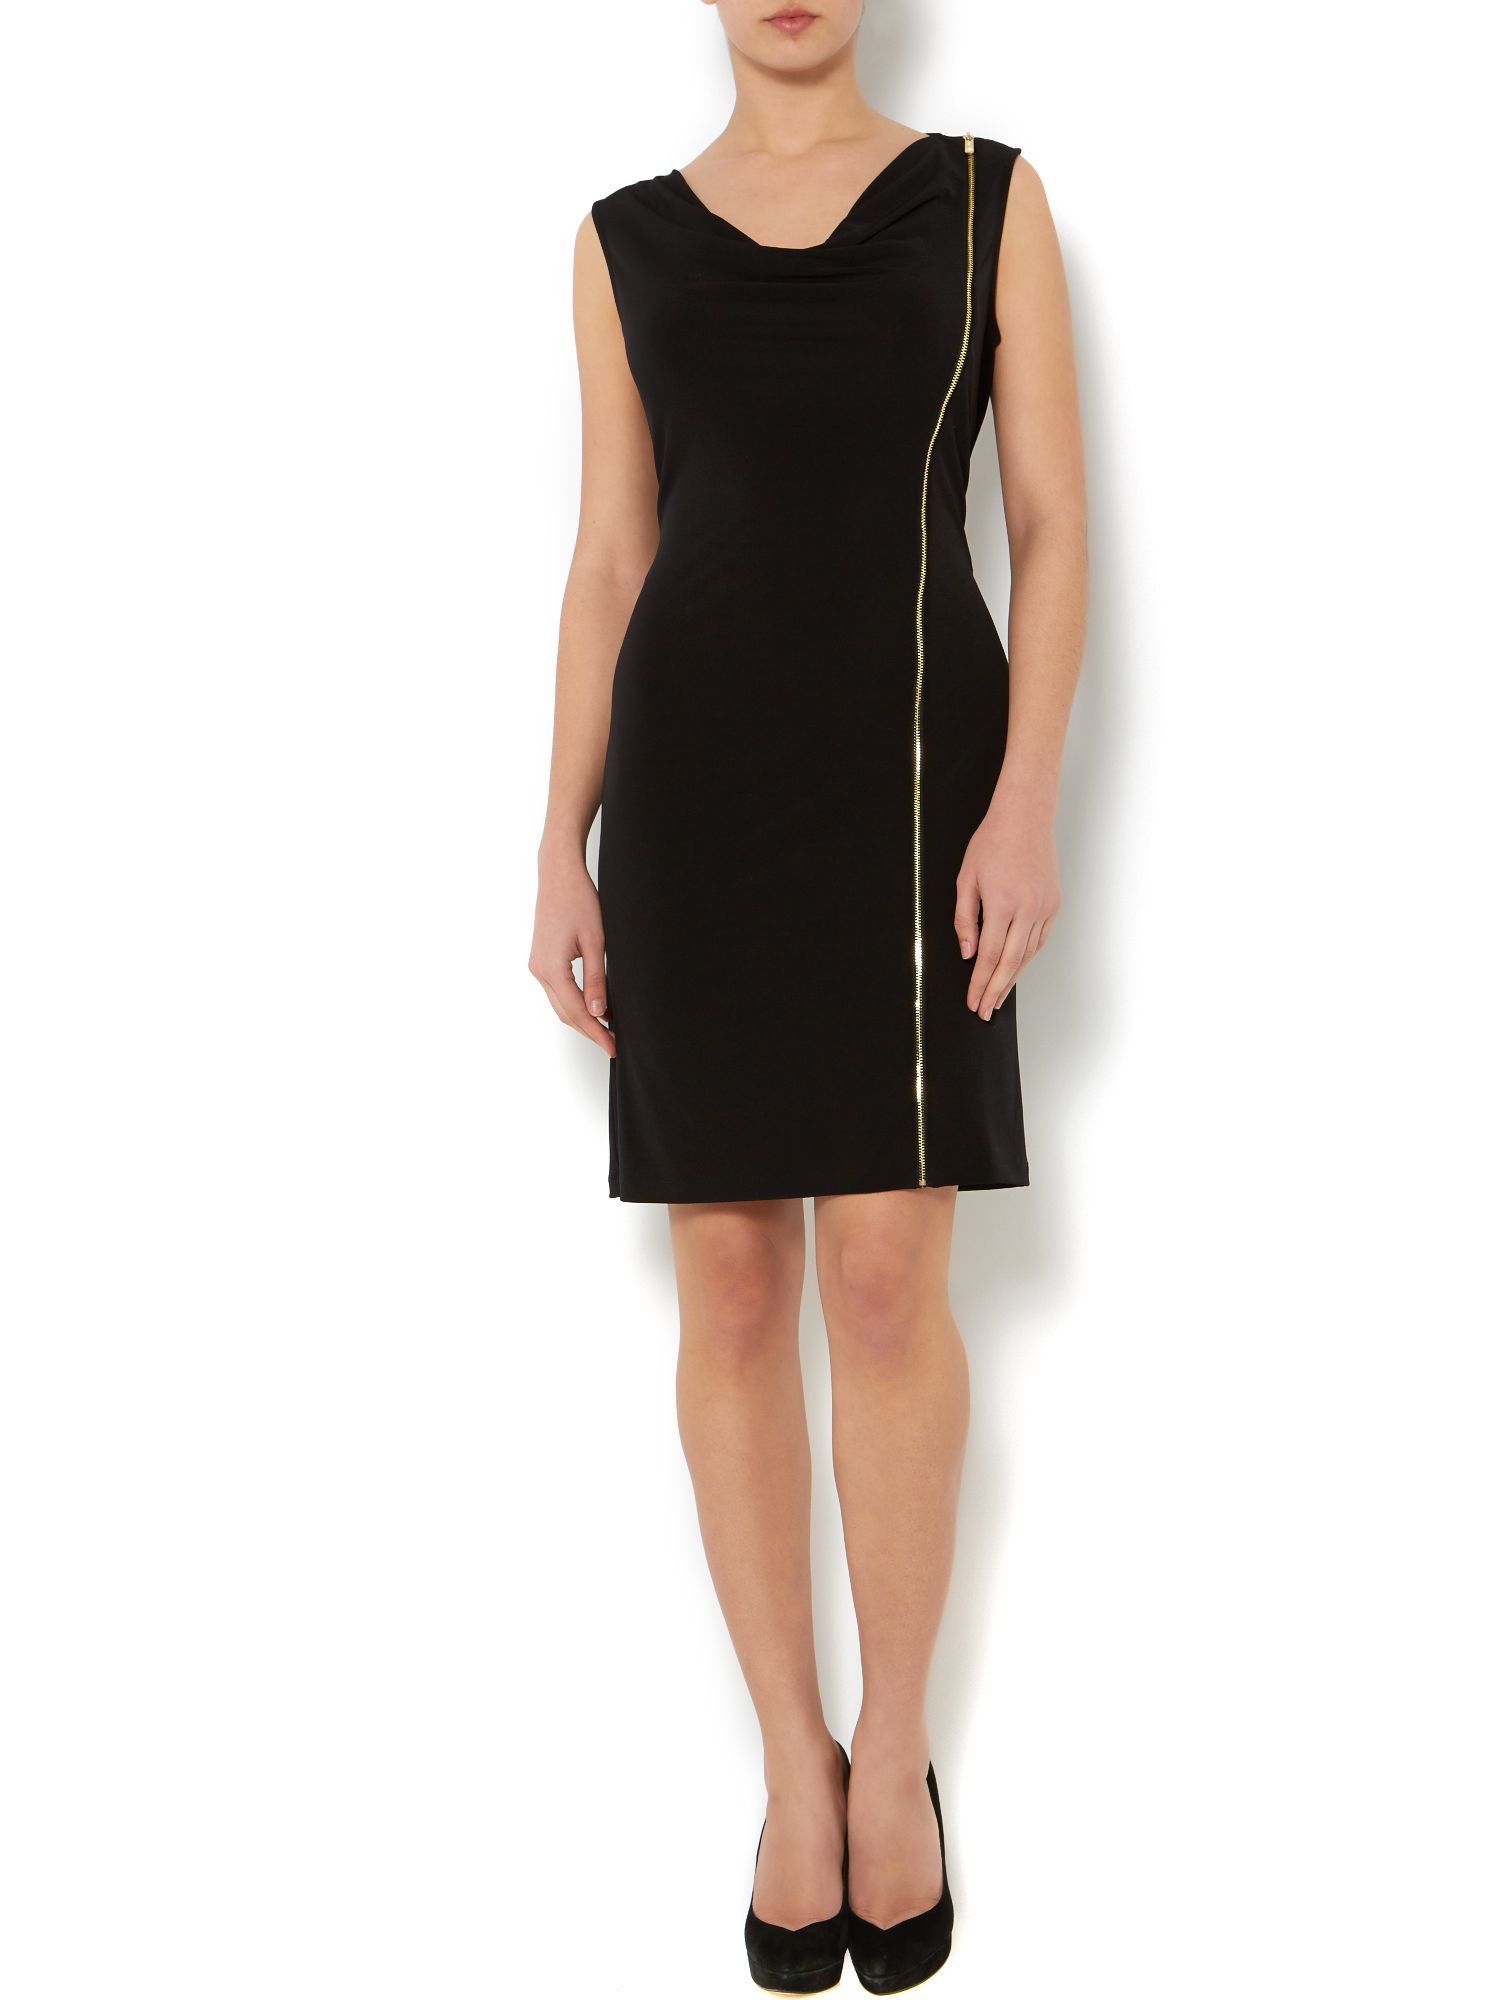 Cowl front zip side dress